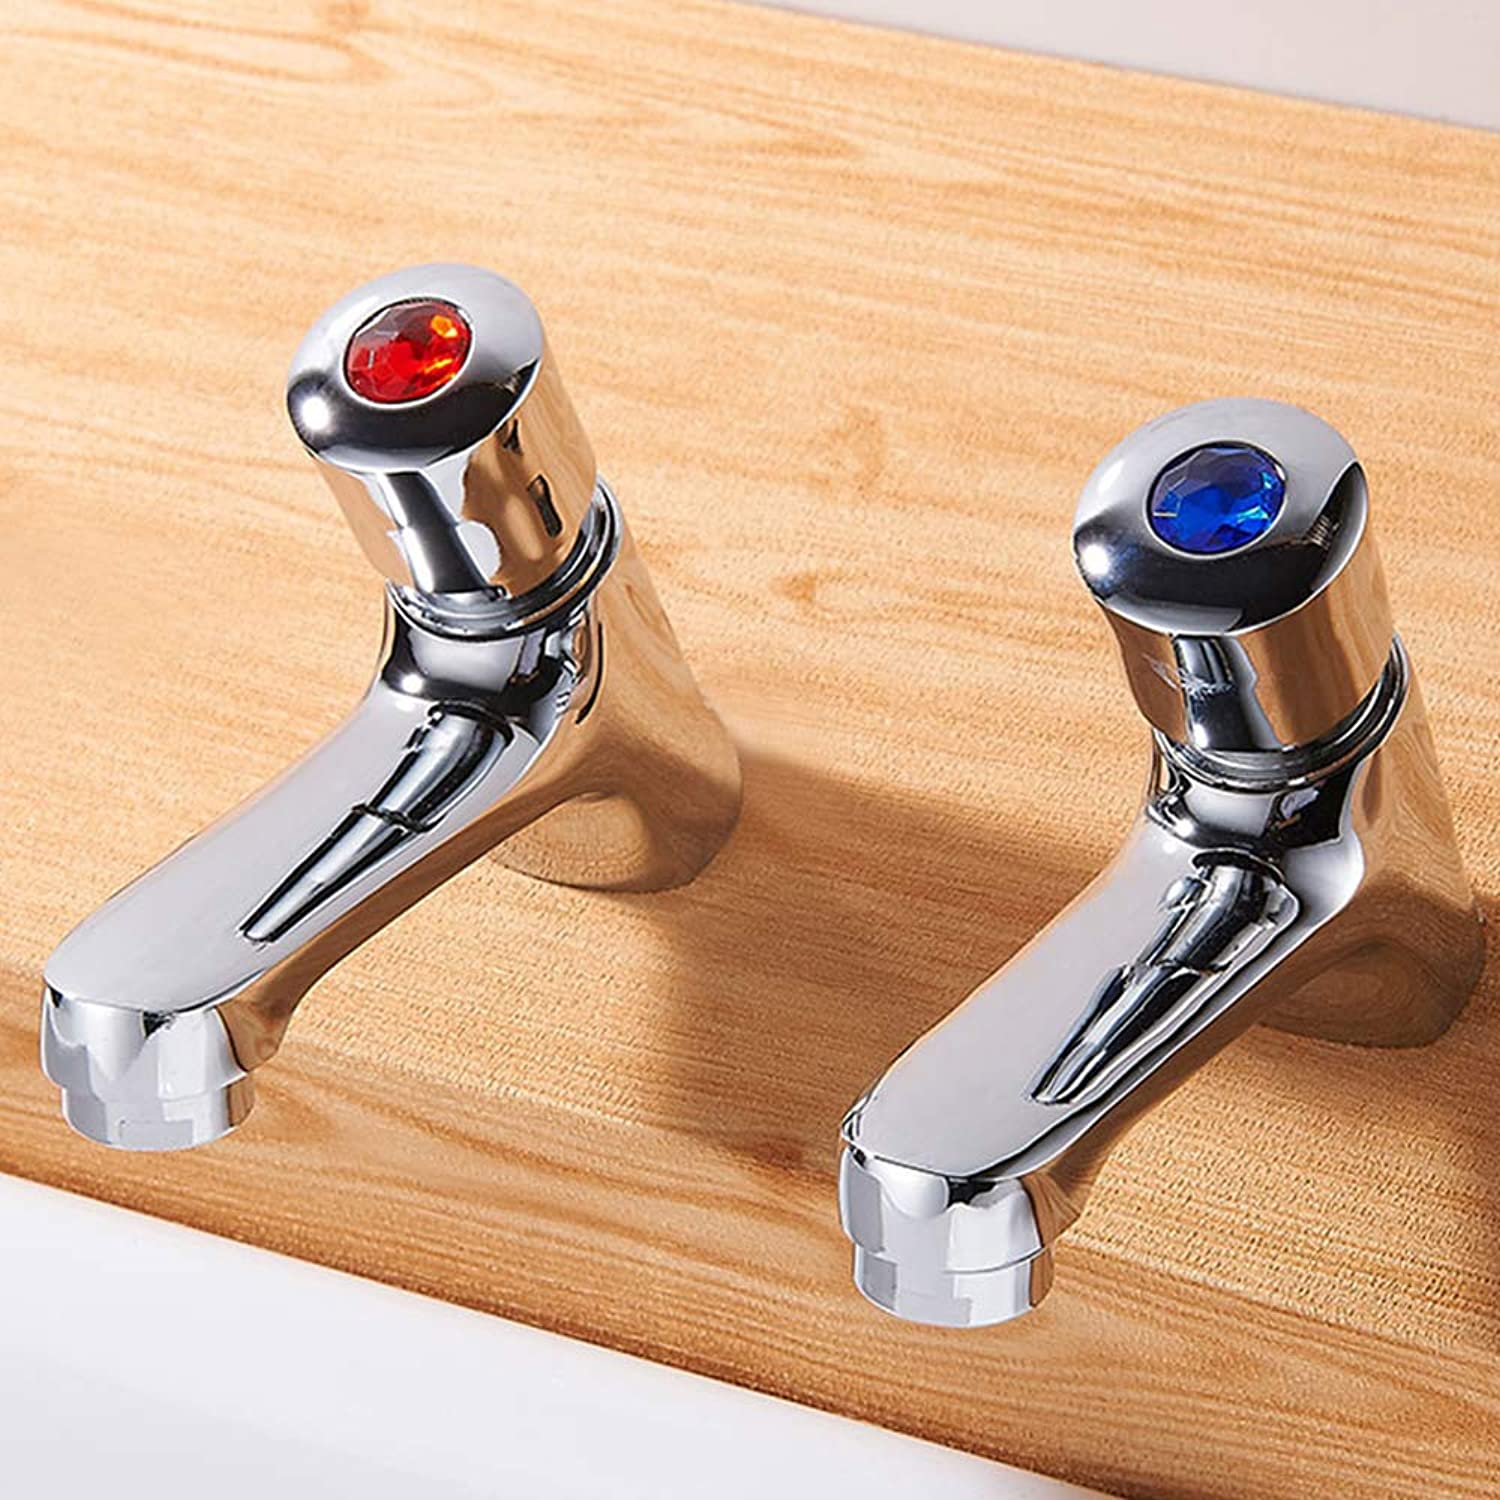 1 Pair Self Closing Basin Taps Commercial Bathroom Sink Water Saving Faucet Hot&Cold Chrome Lead-Free for Home Hotel Public Toilet